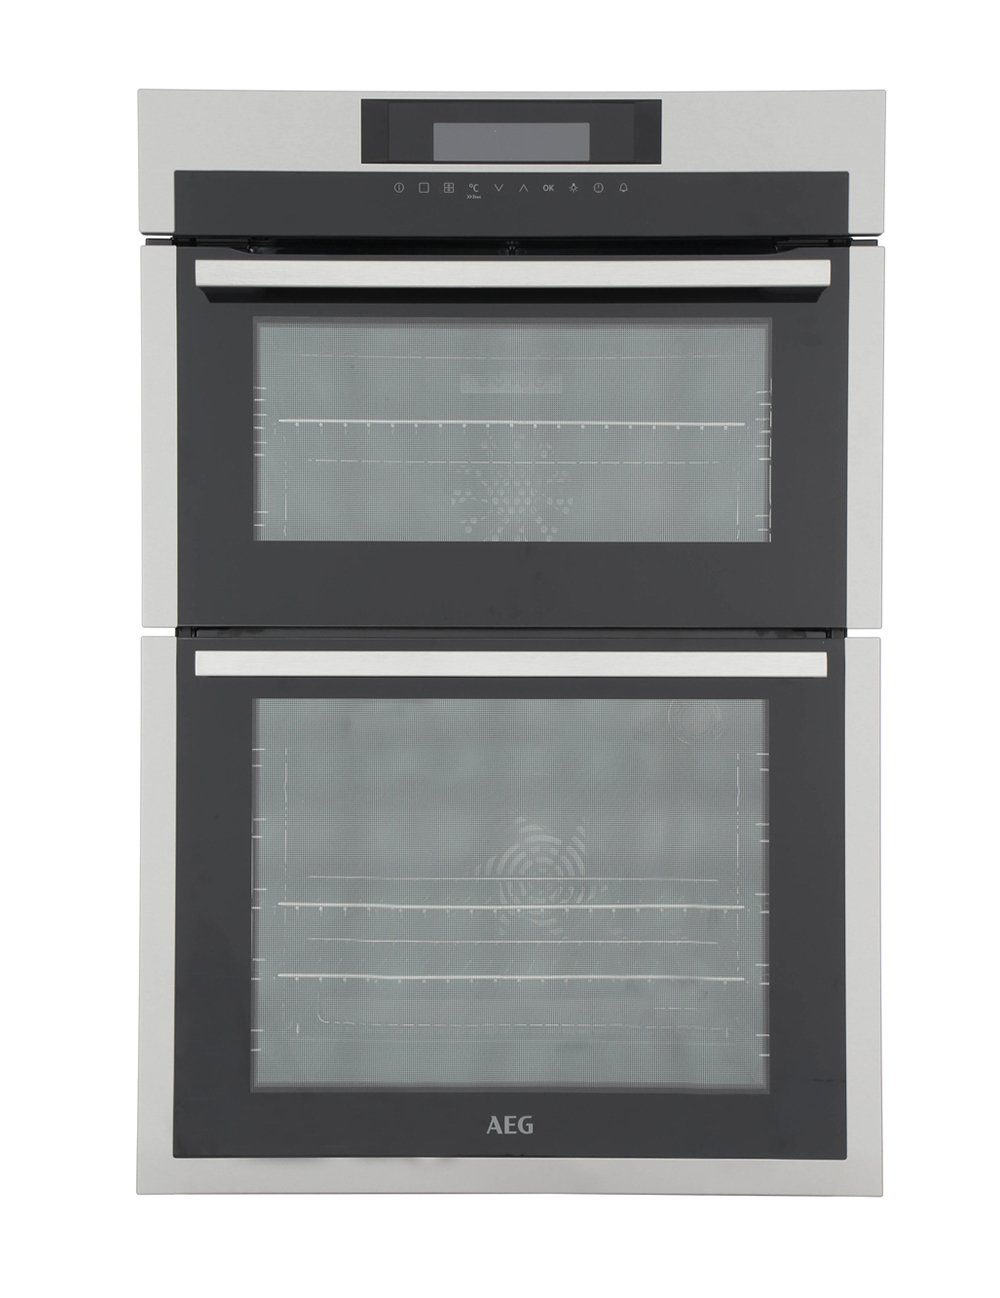 AEG DCE731110M SurroundCook Double Built In Electric Oven